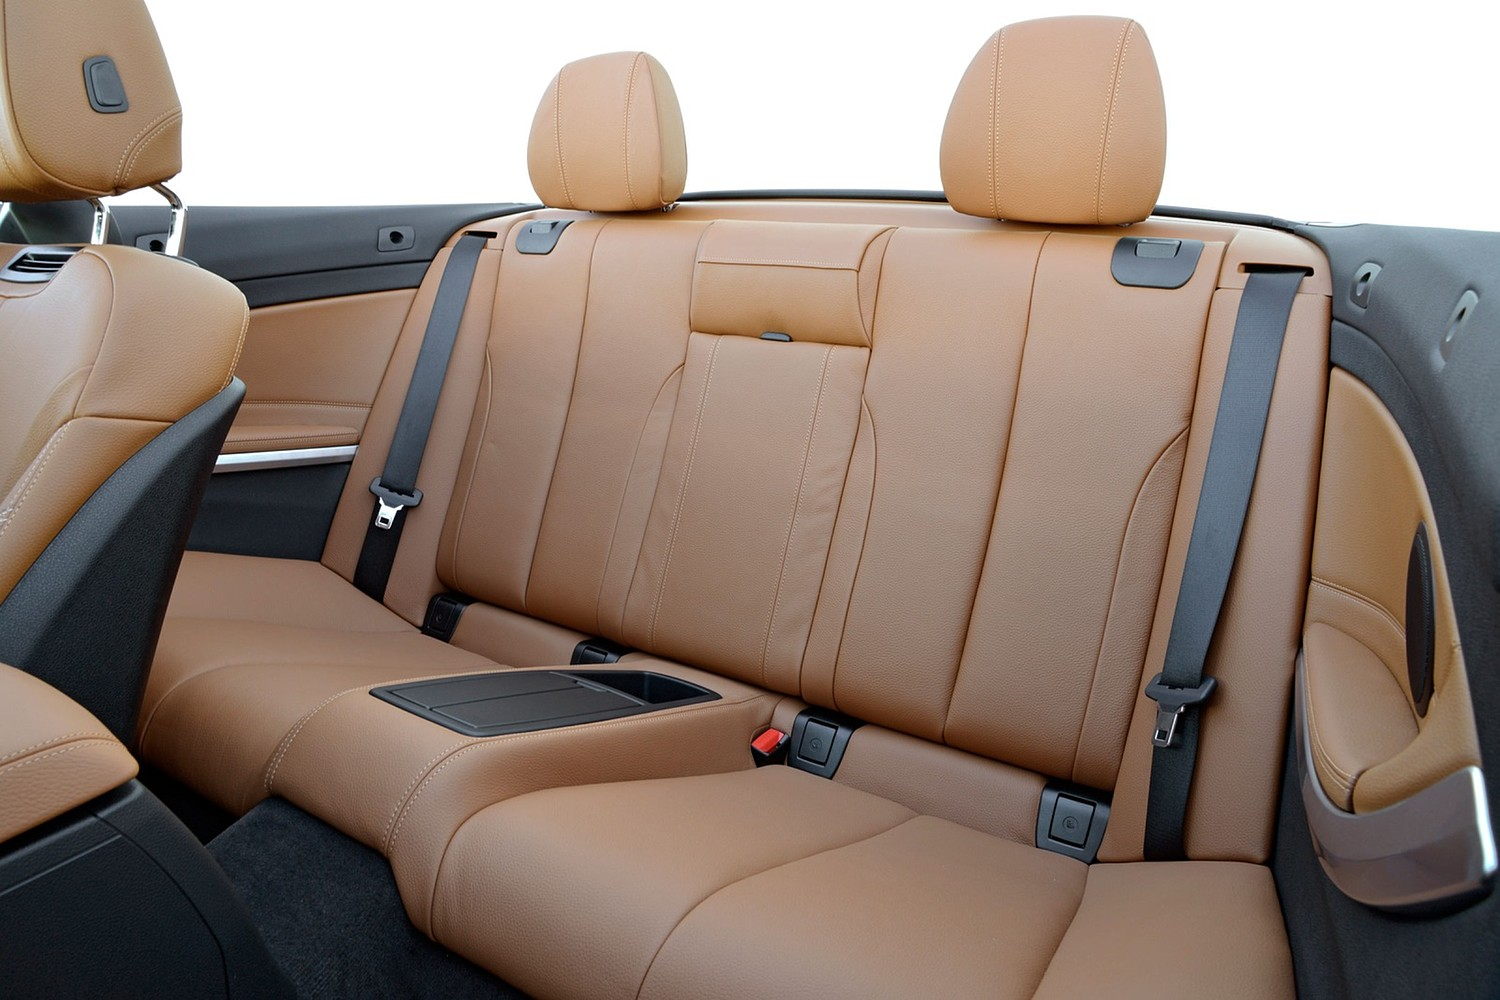 2017 BMW 4 Series 440i Convertible Rear Interior. Luxury Line Package Shown.